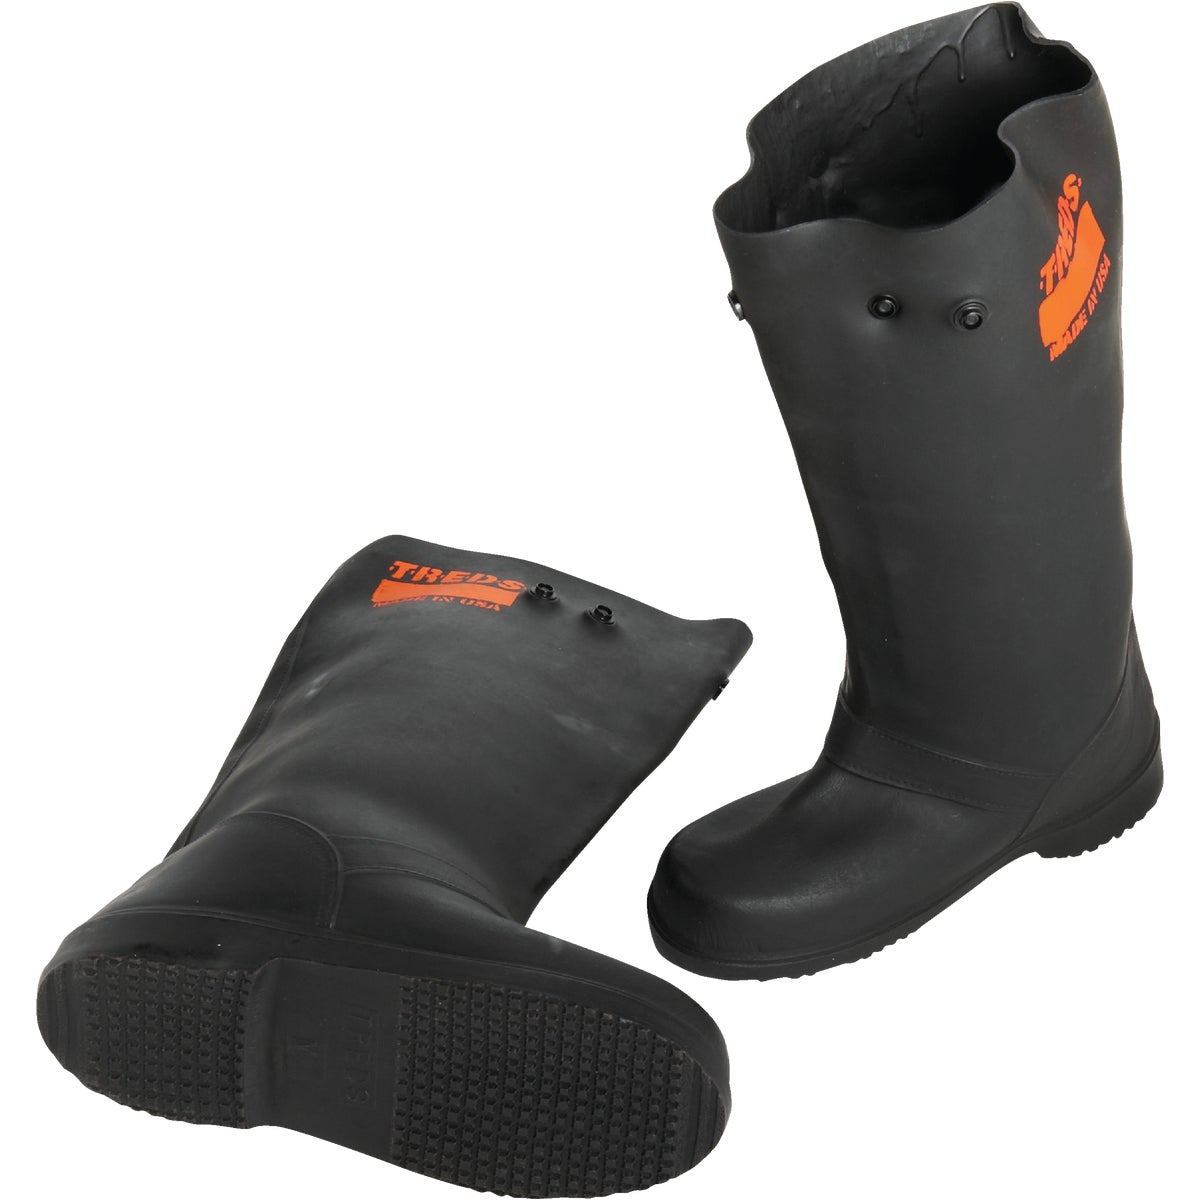 "17"" MED TREDS RUBBR BOOT - 17851 by Advantage Prod Treds"